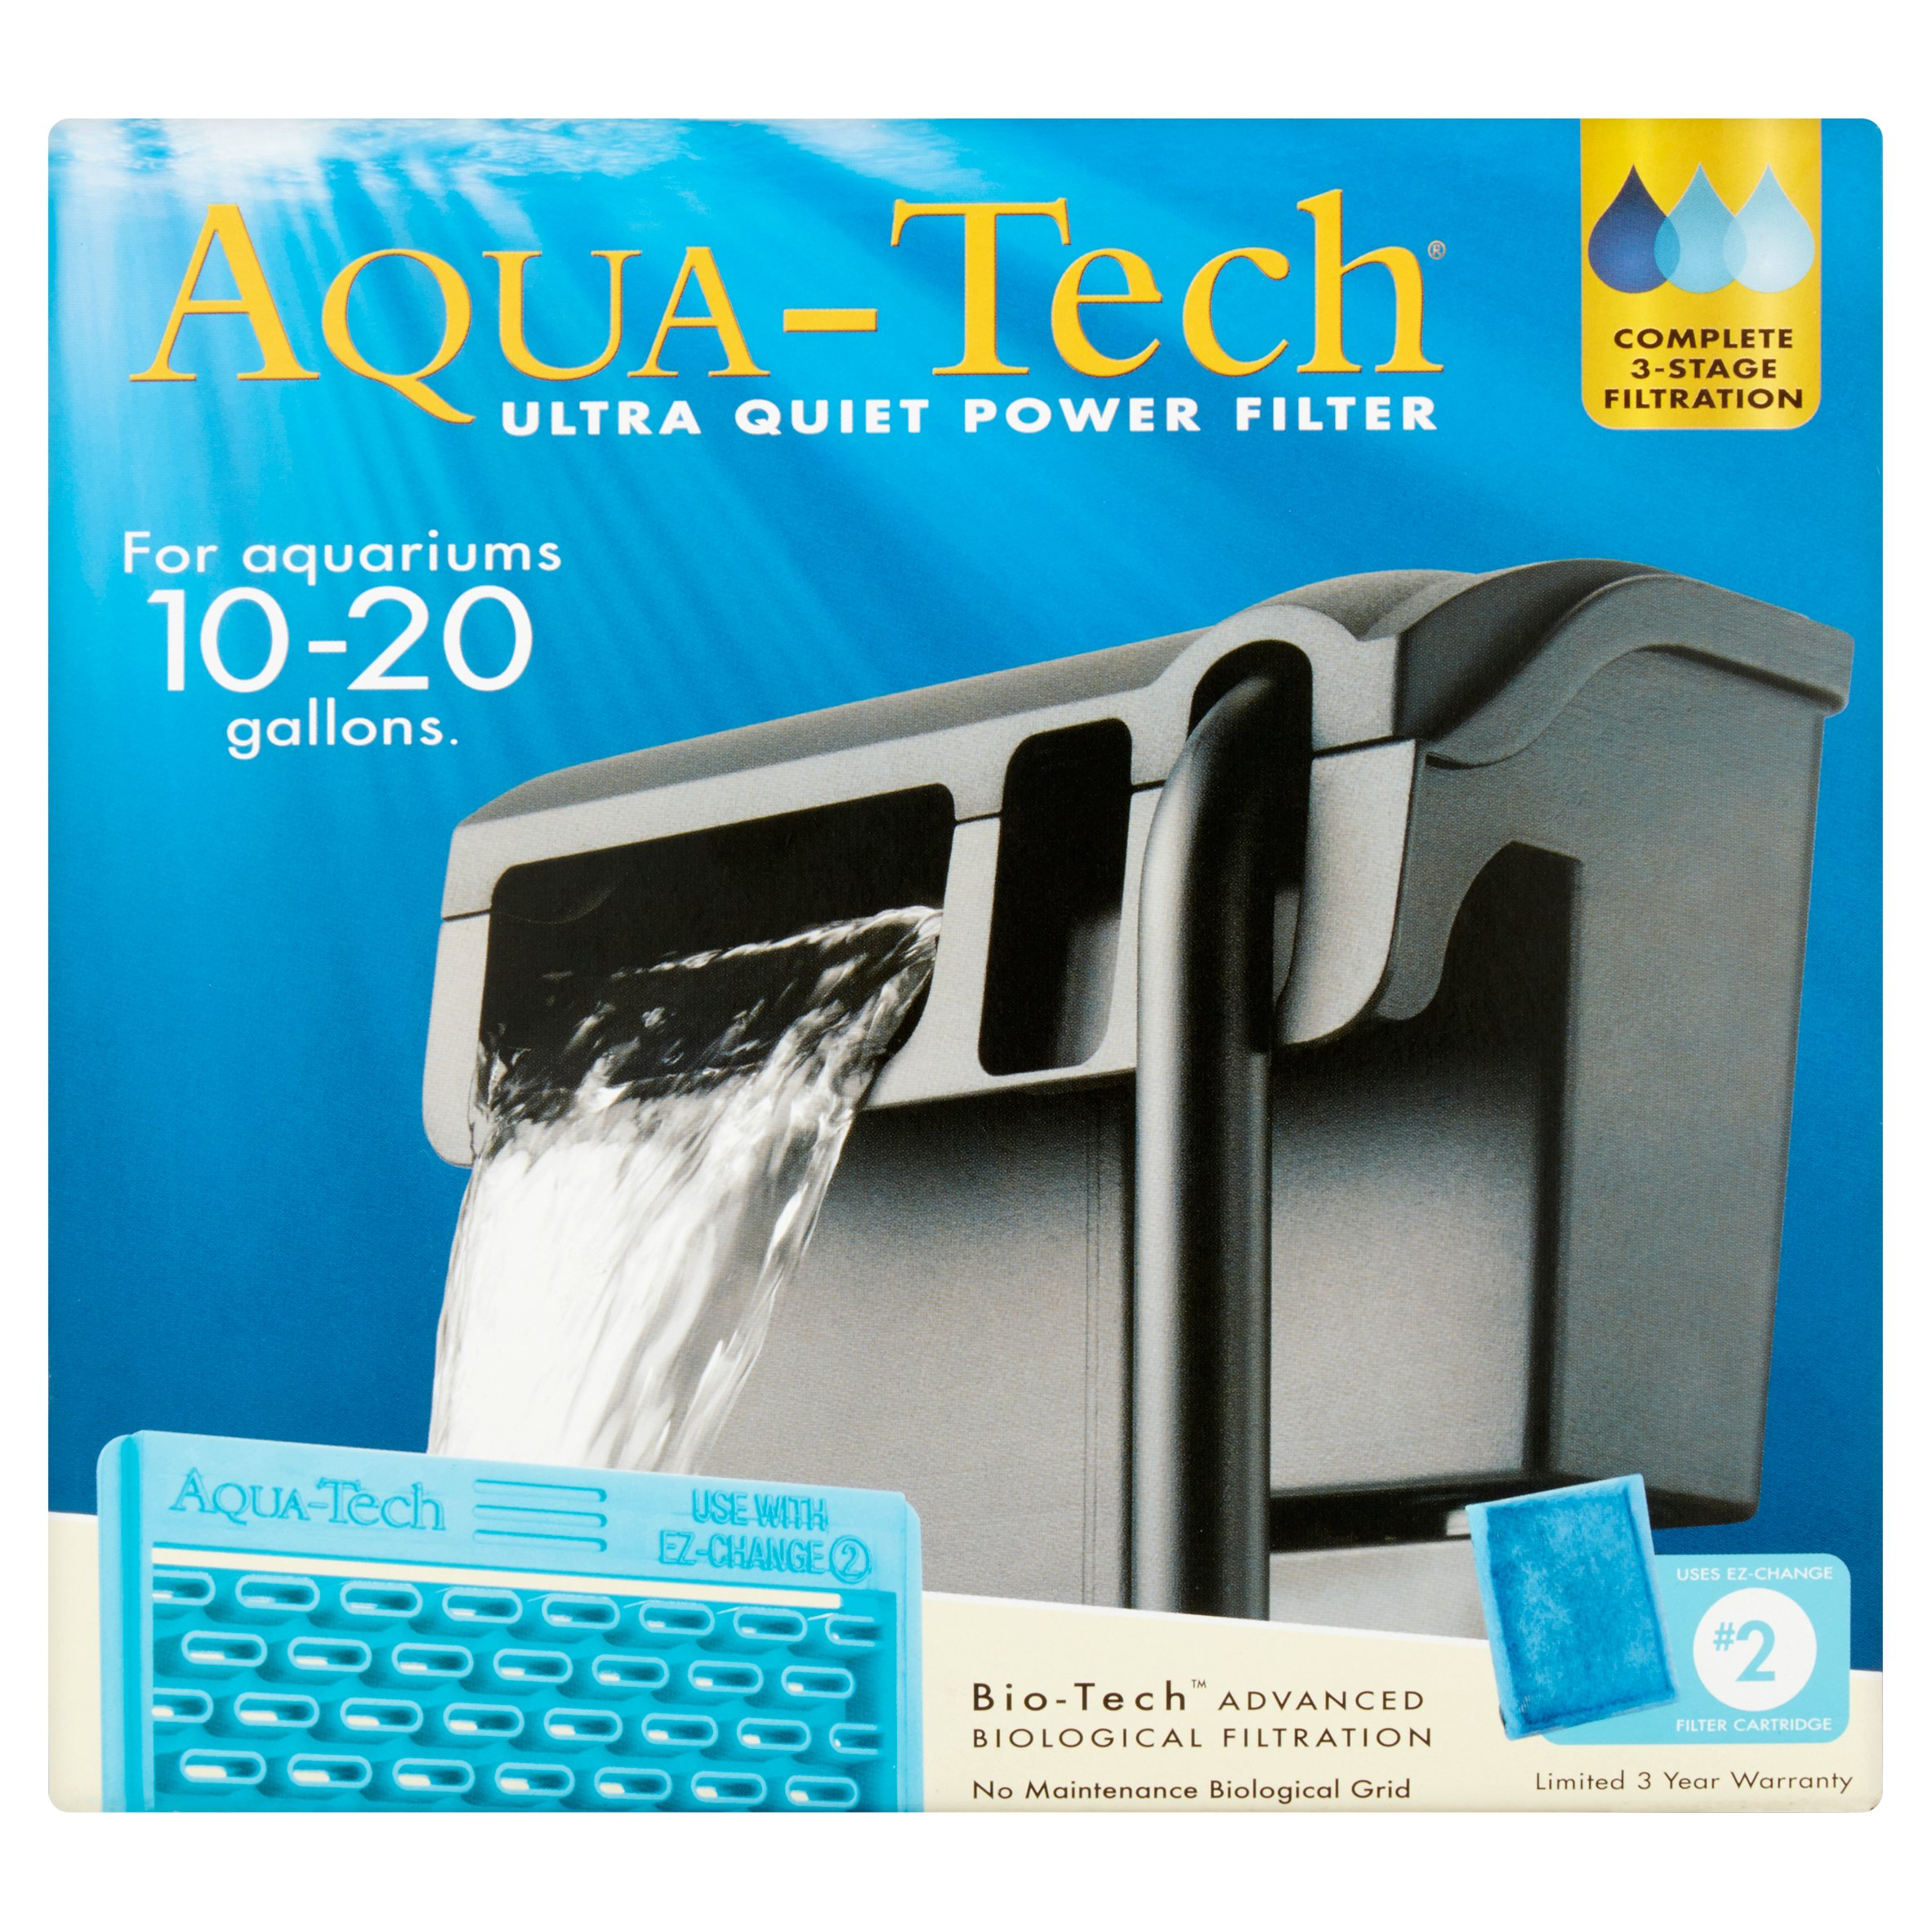 Aqua-Tech Ultra Quiet Power Filter for 10-20 Gallons